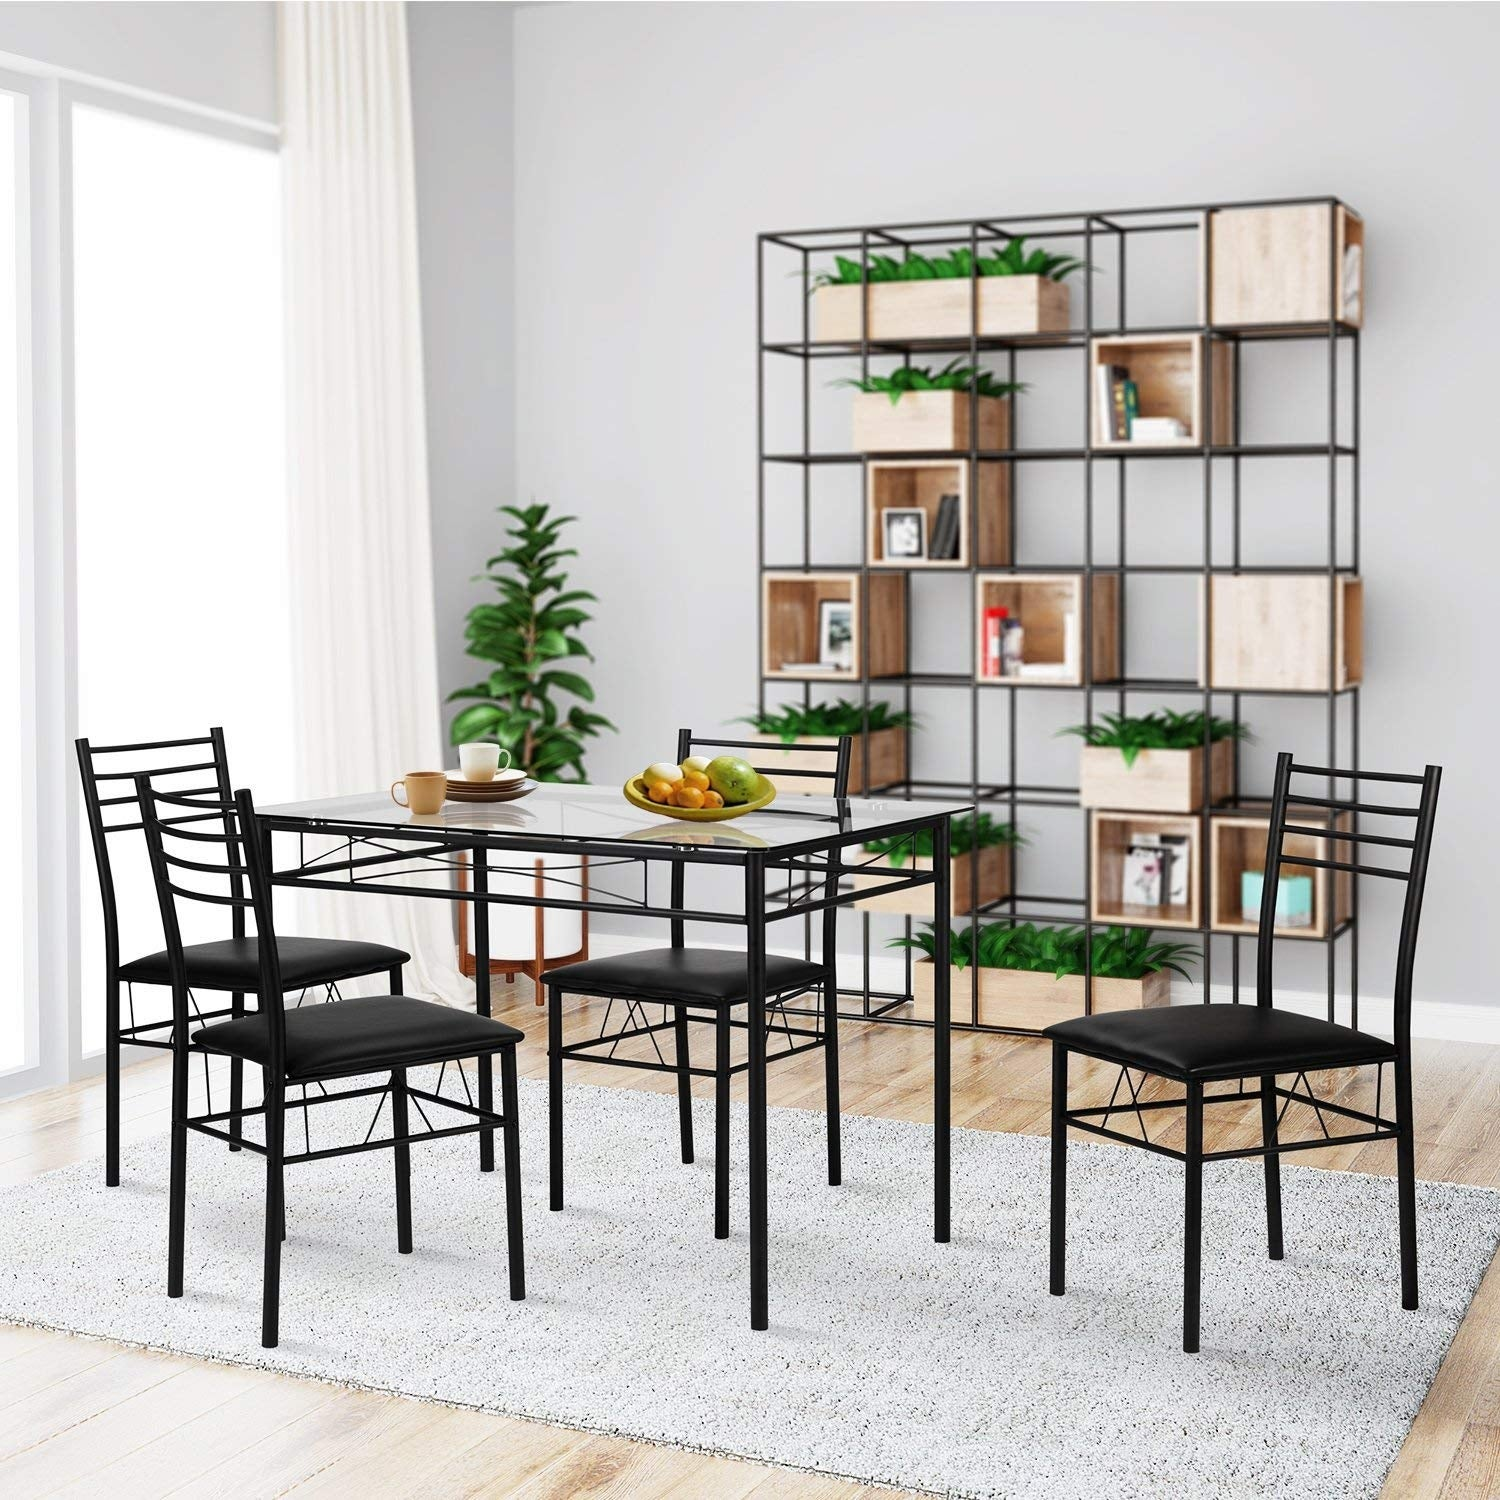 Shop vecelo glass dining table set with 4 chairs kitchen table set free shipping today overstock com 13023443